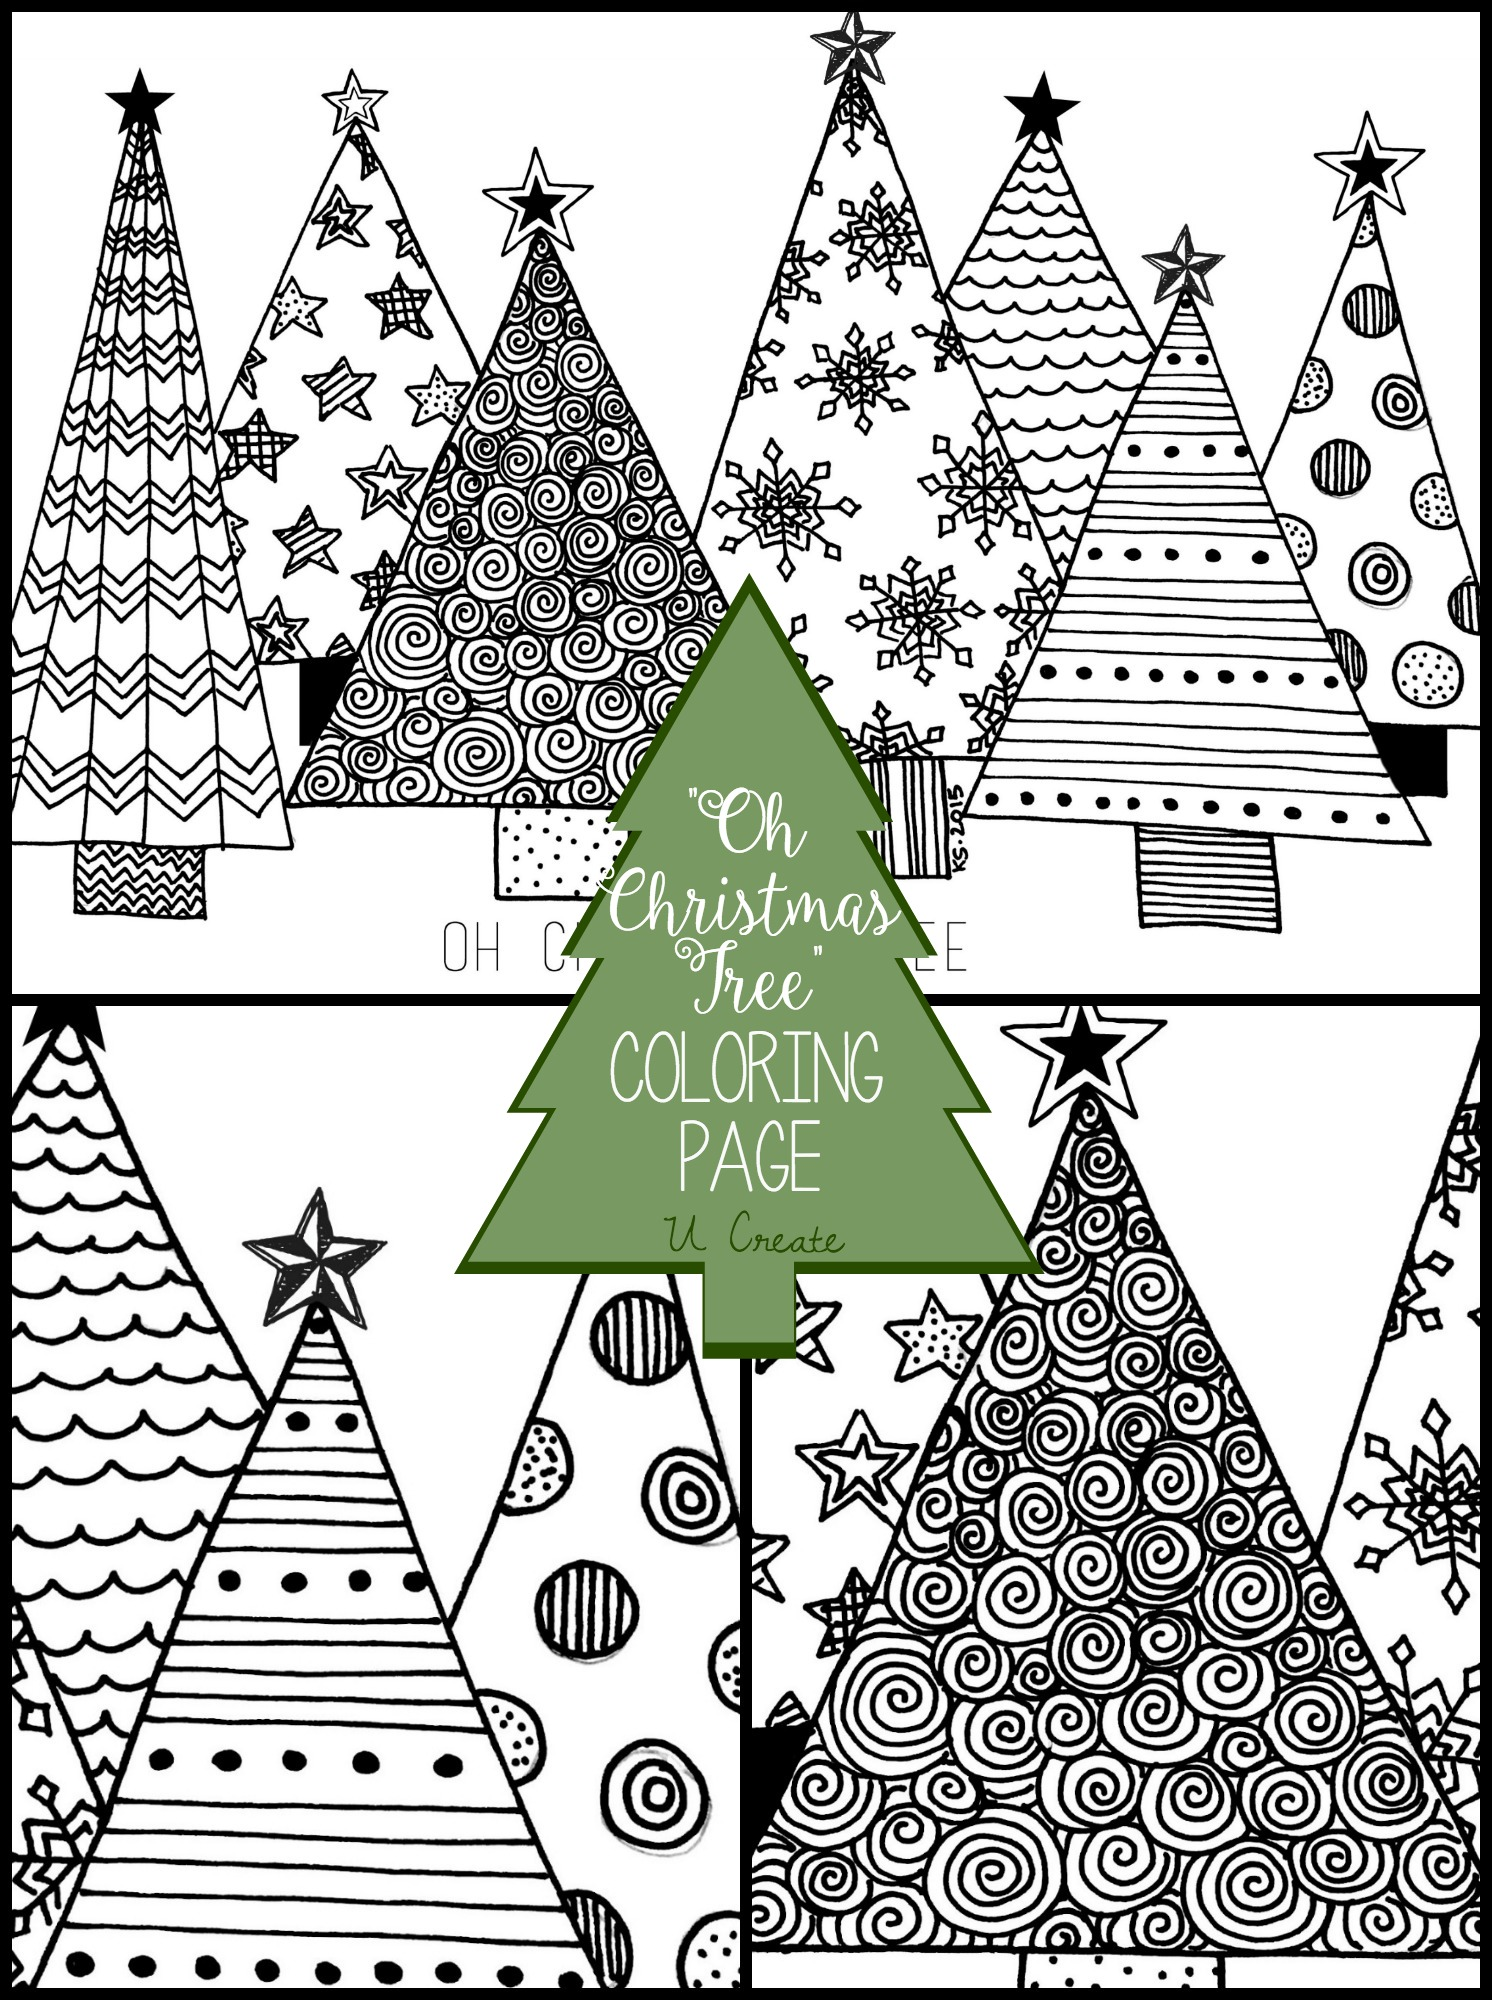 """Oh Christmas Tree"" Coloring Page - U Create"